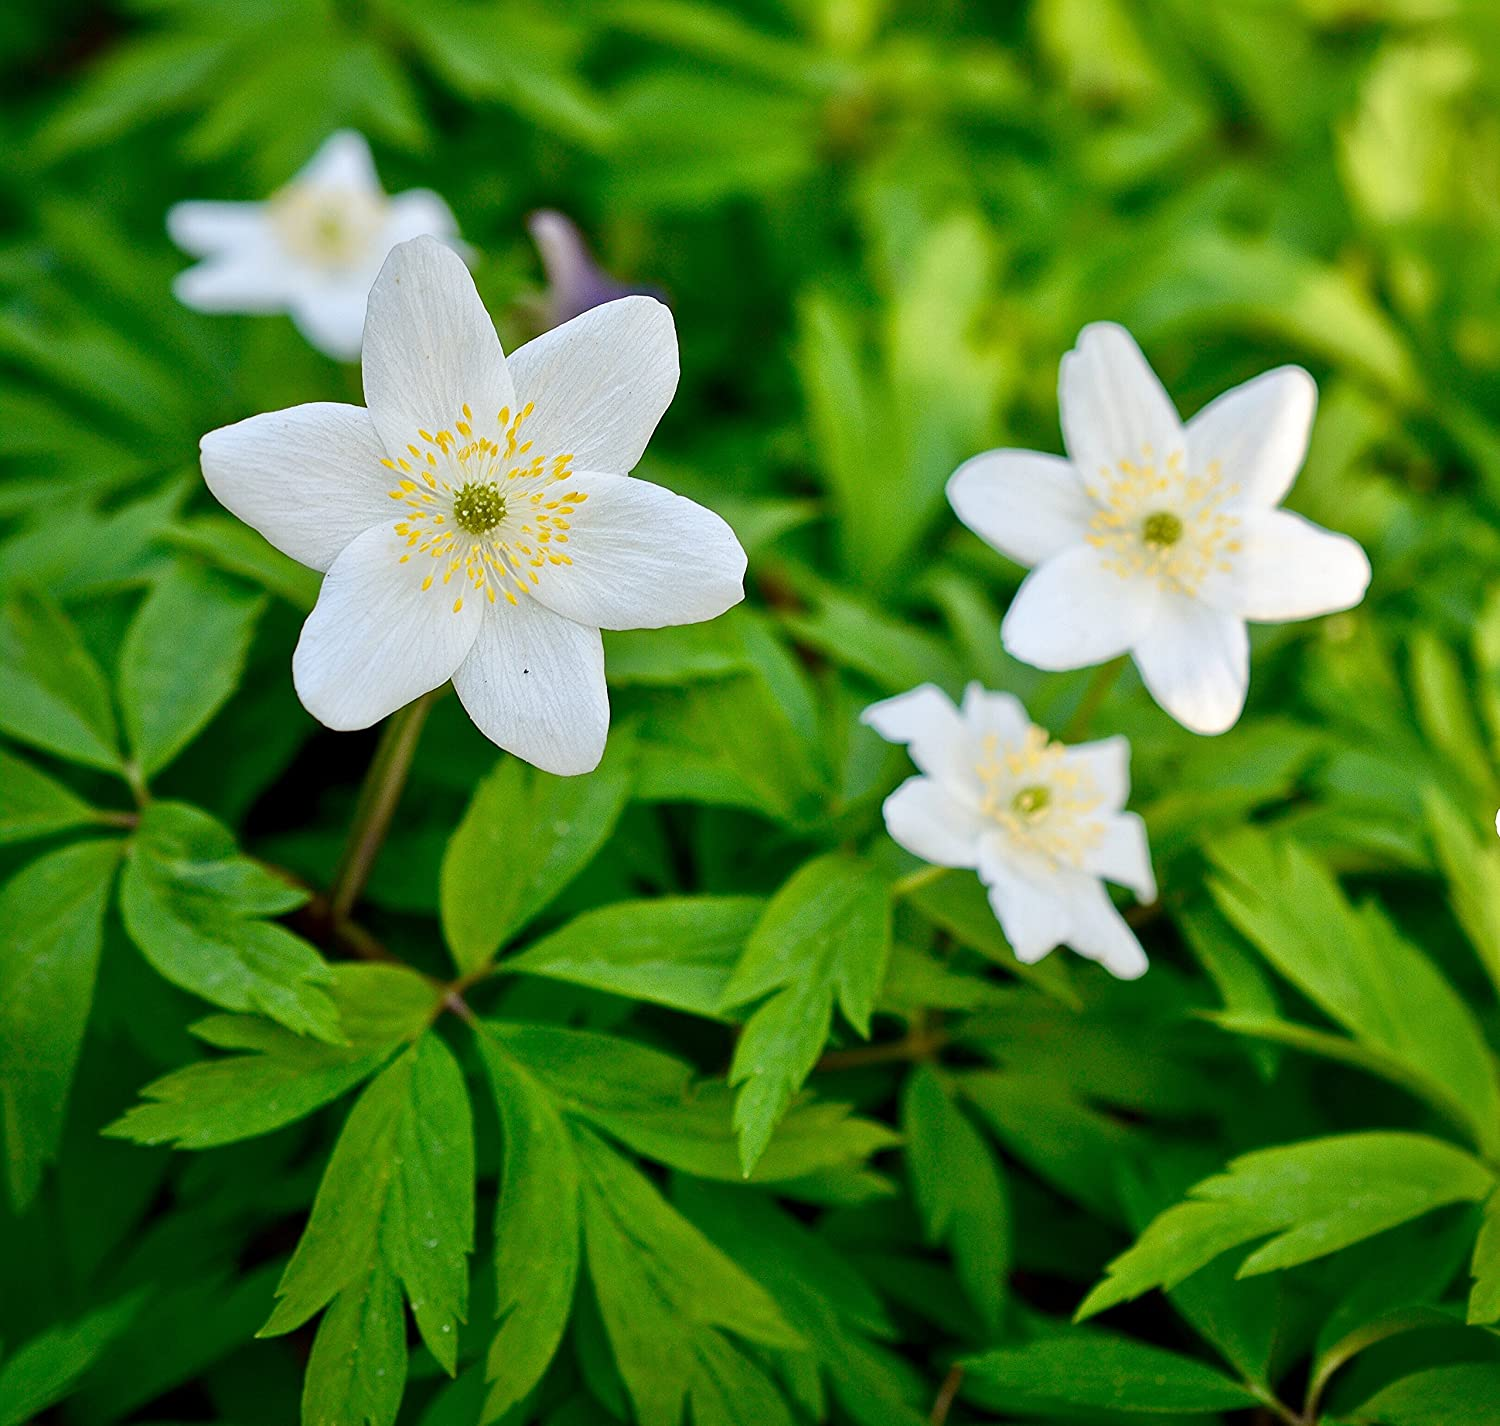 25 ENGLISH WOOD ANEMONE NEMOROSA Freshly-Lifted Spring Flowering Bulbs, Rhizomes Plant With Snowdrops & Bluebells (FREE UK P&P) Woodland bulbs